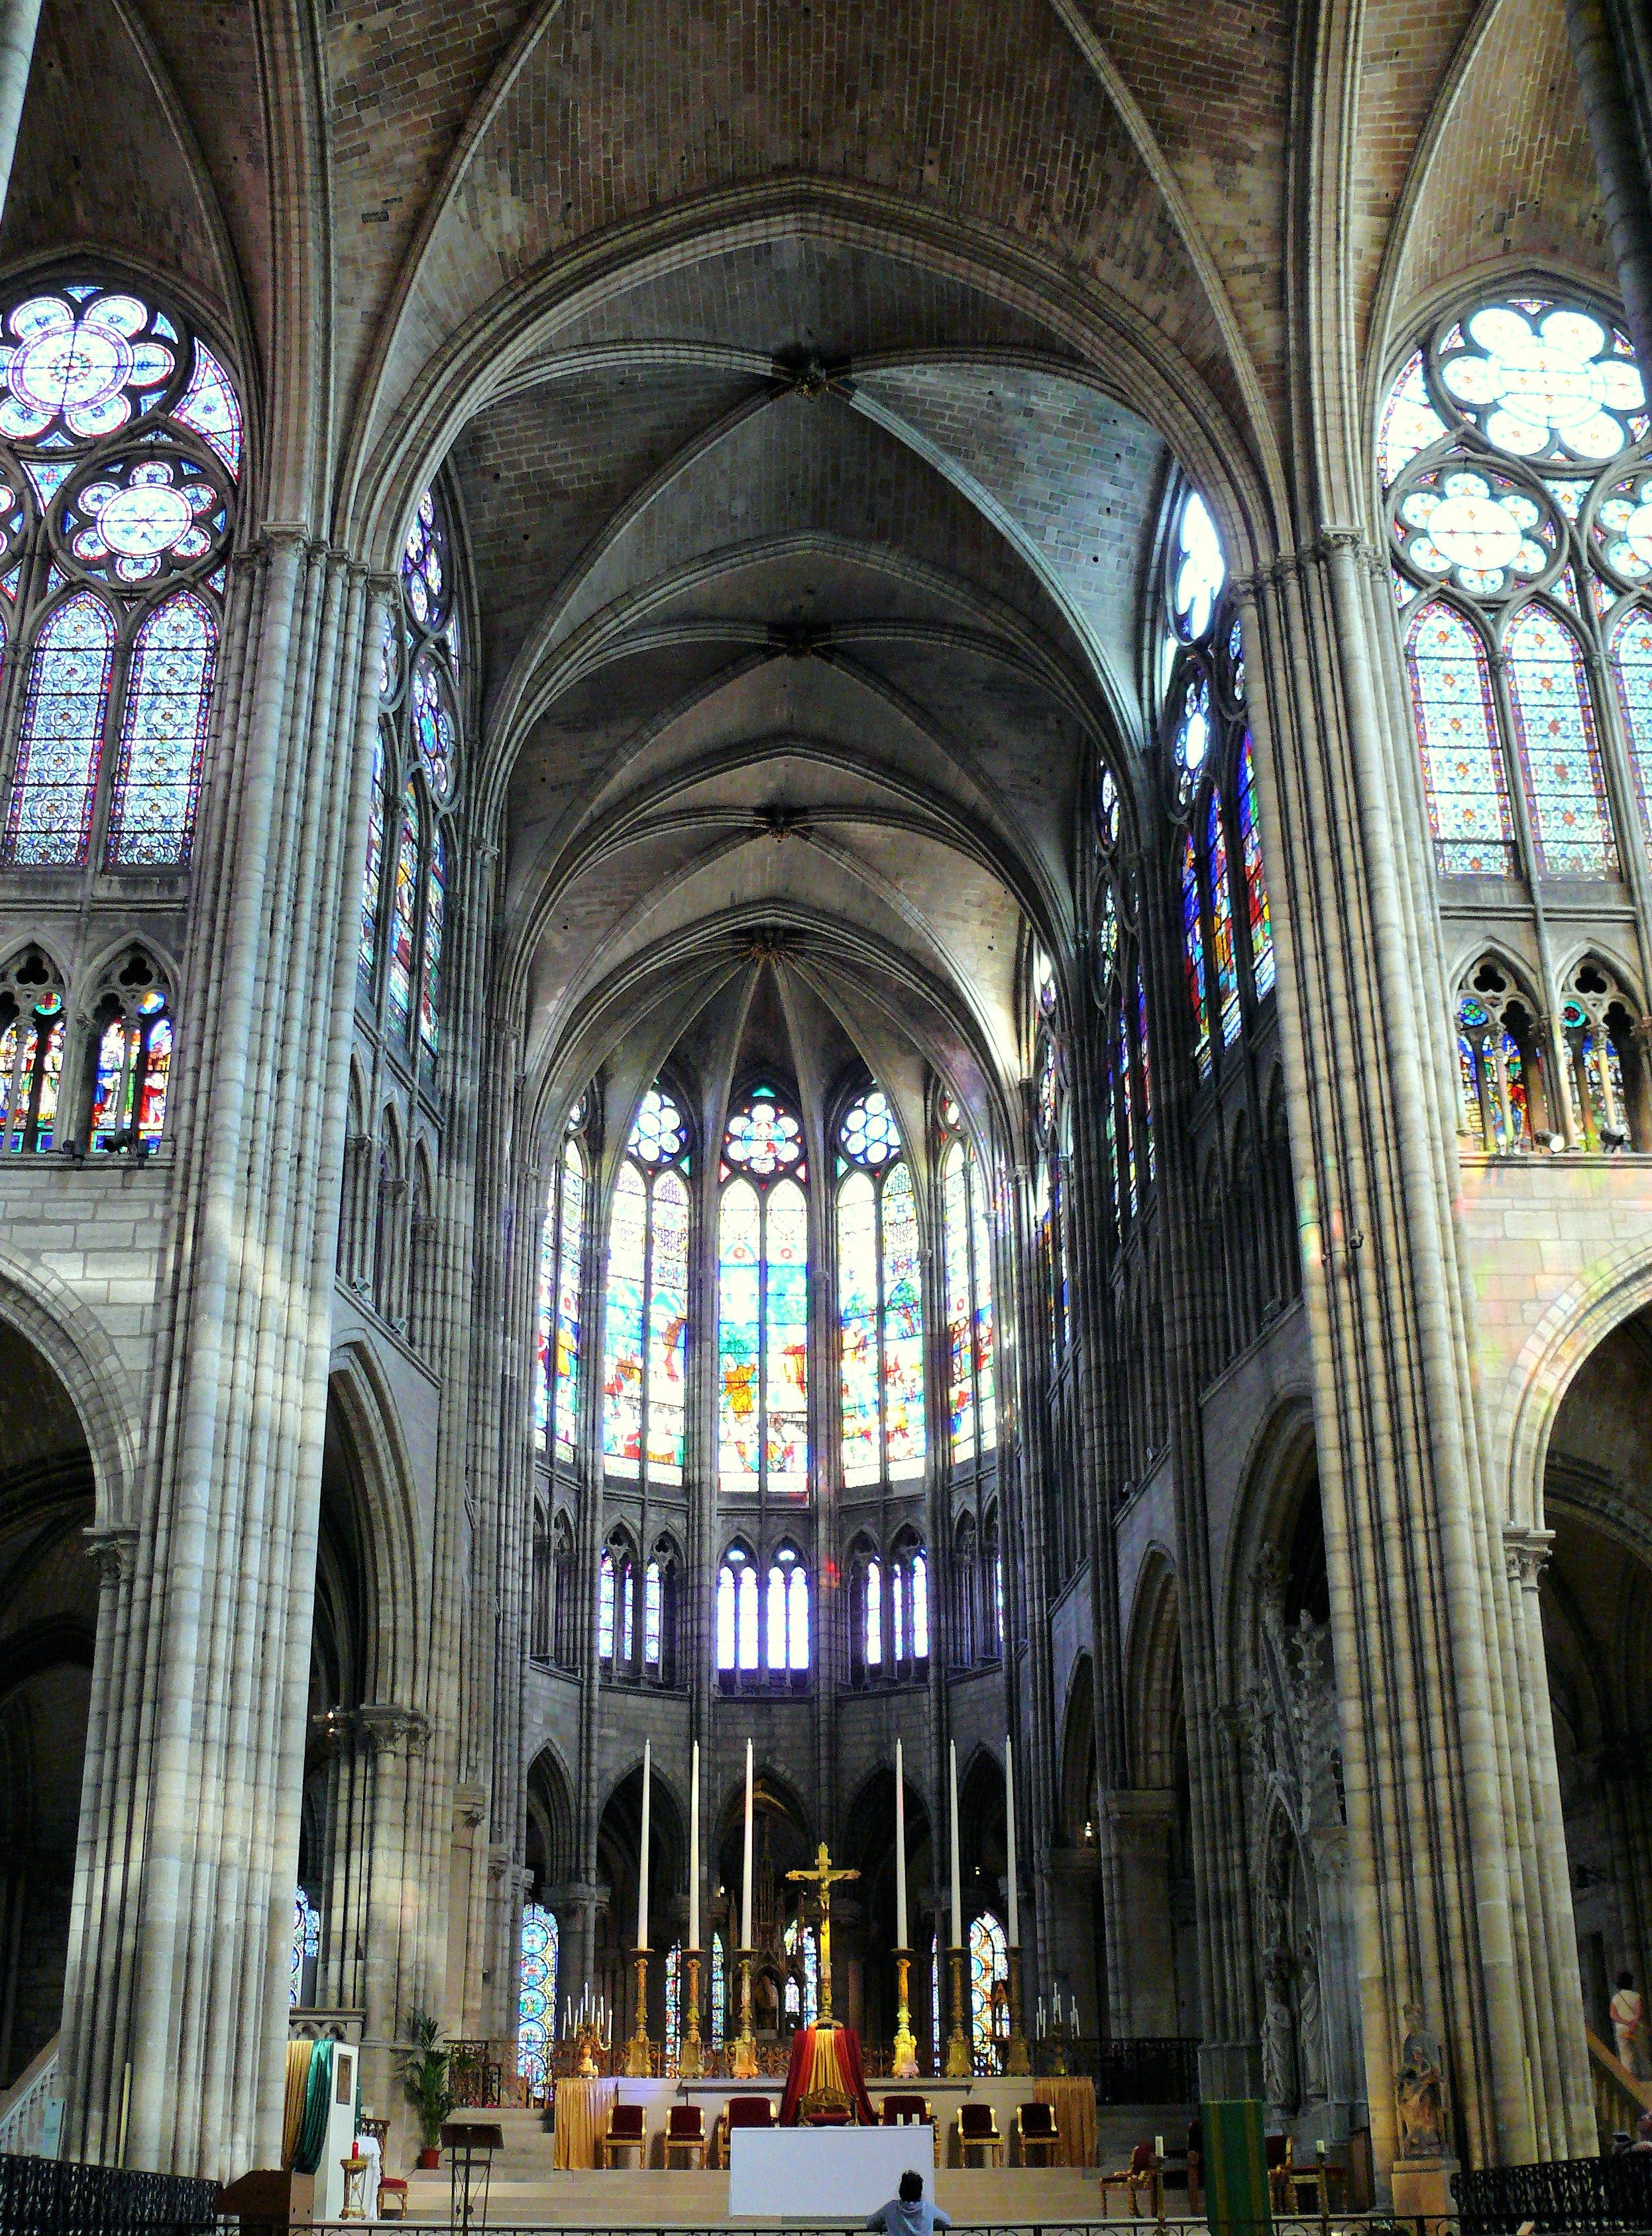 Ordinaire St Denis Architecture #12: Basilica Cathedral Of Saint-Denis: St. Denis Cathedral Interior |  Theological Architecture | Pinterest | St Denis, Cathedrals And Saints